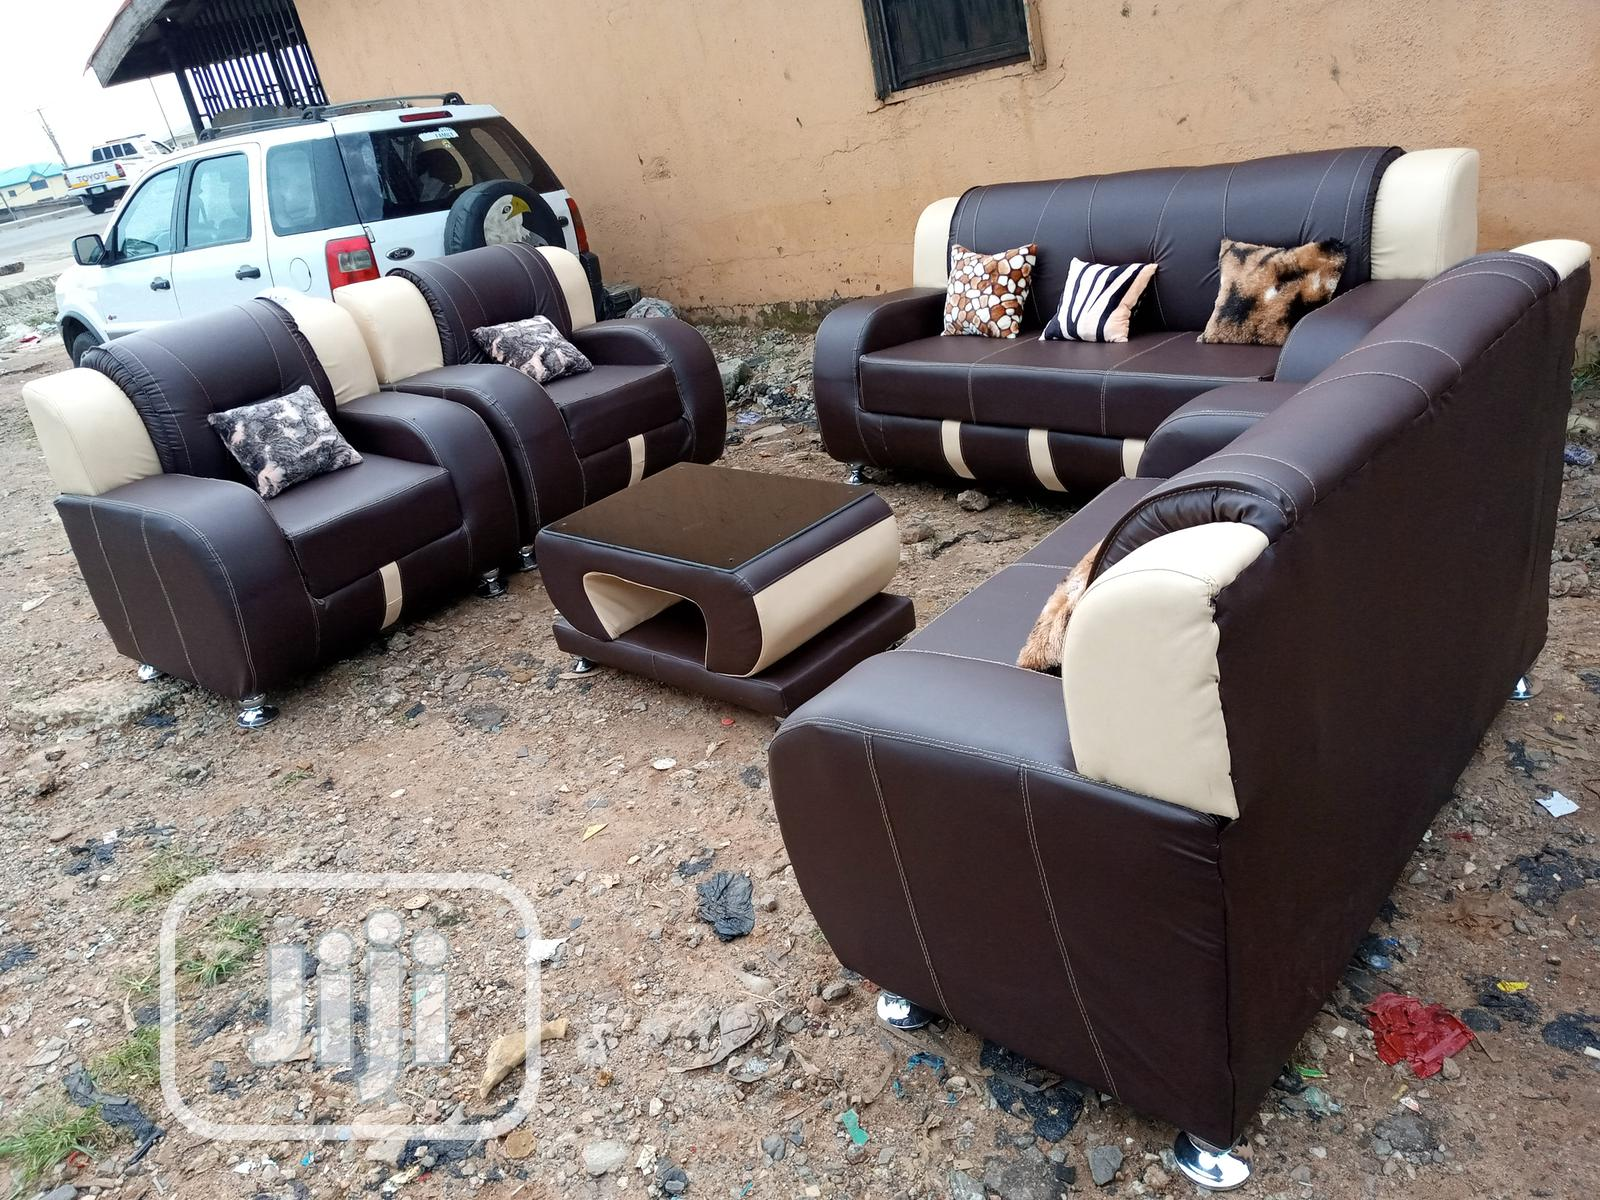 Complete Set of Couch - 7seat Leather Sofa Chairs With Table